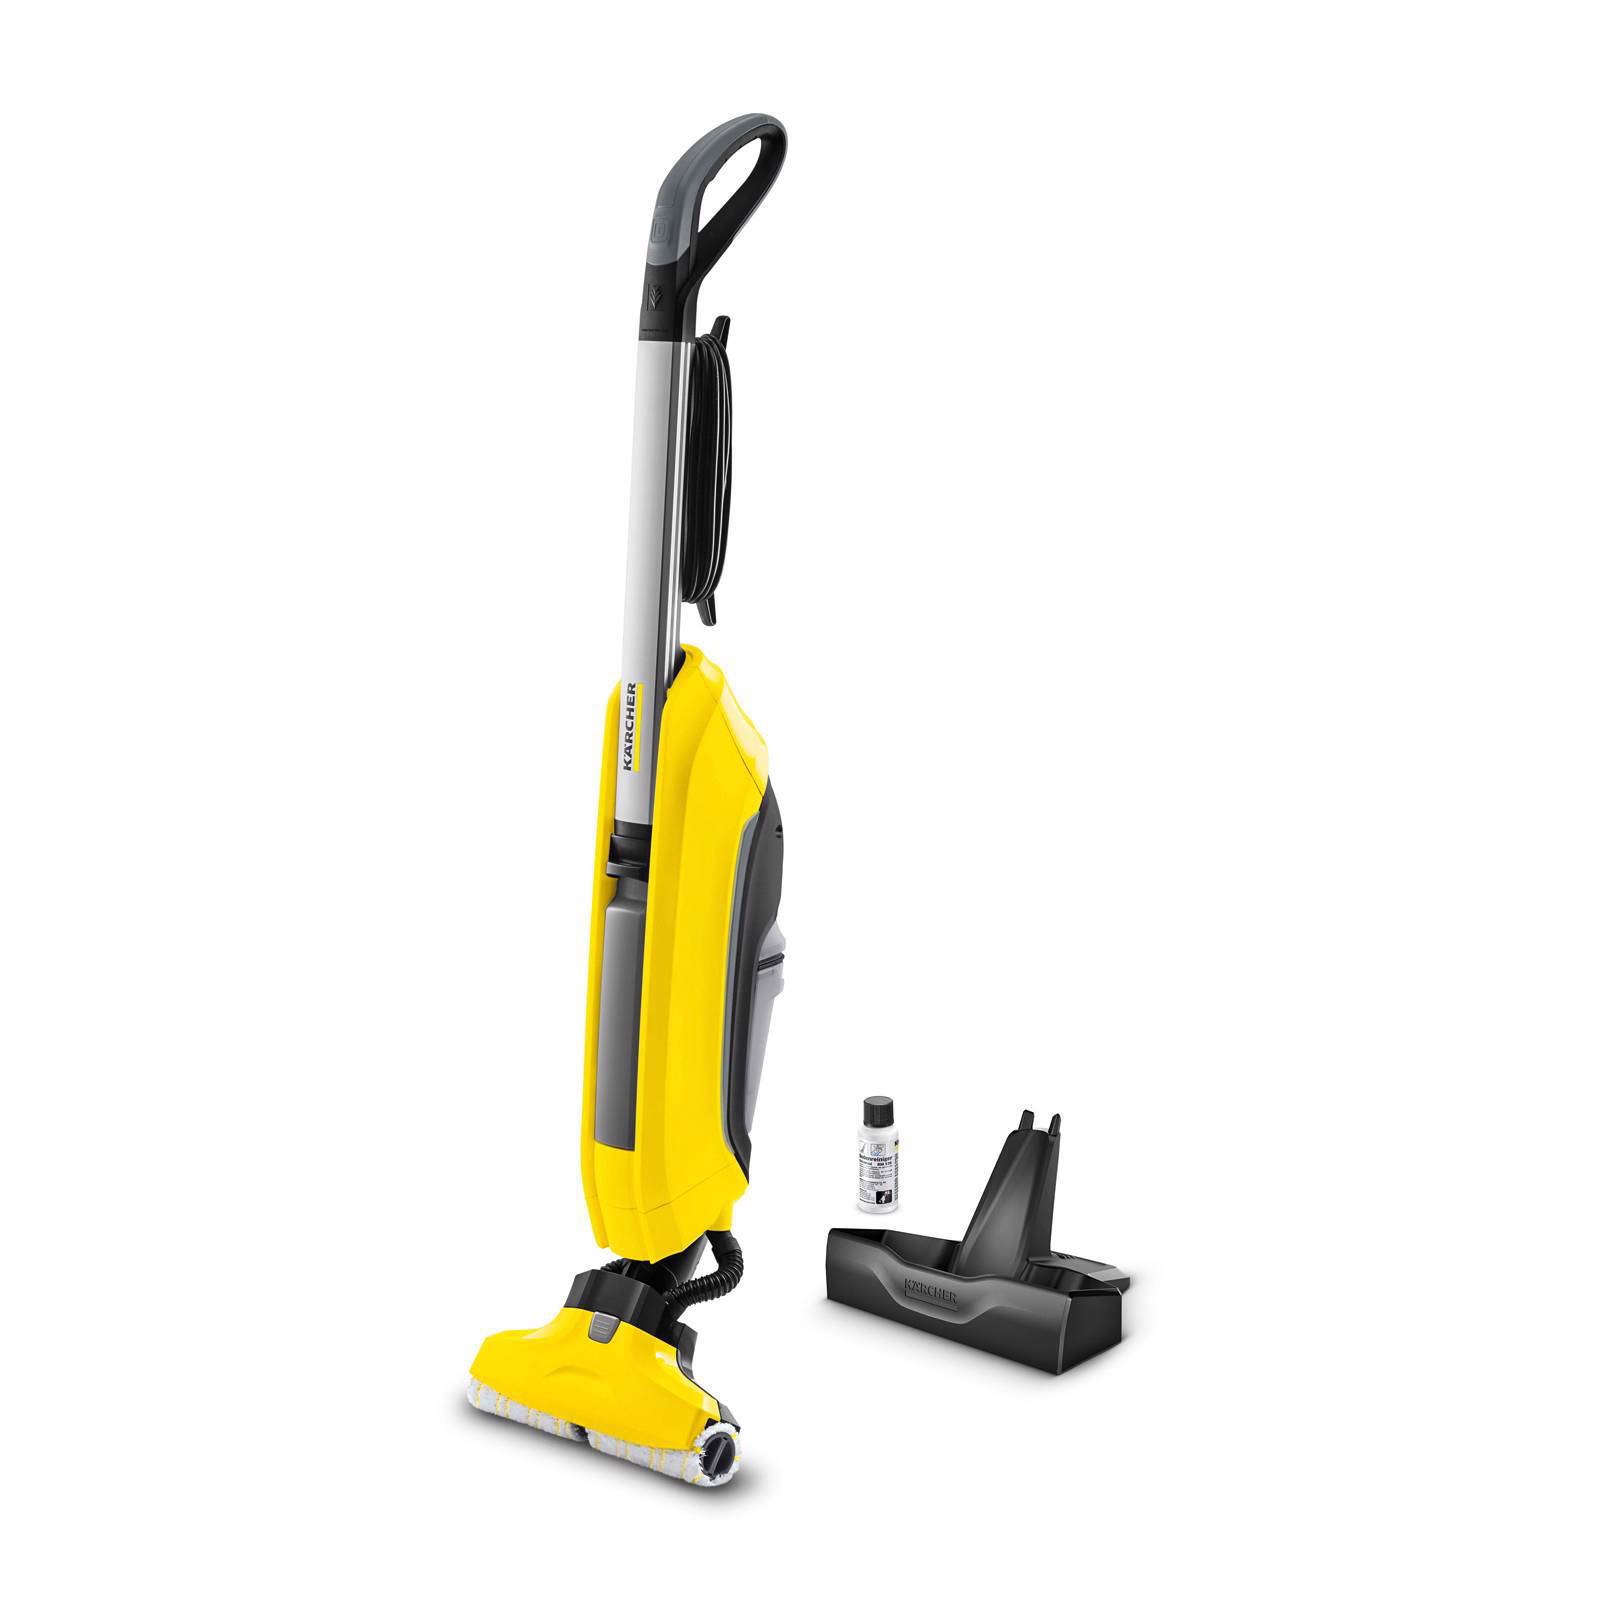 Kärcher FC 5 Floorcleaner